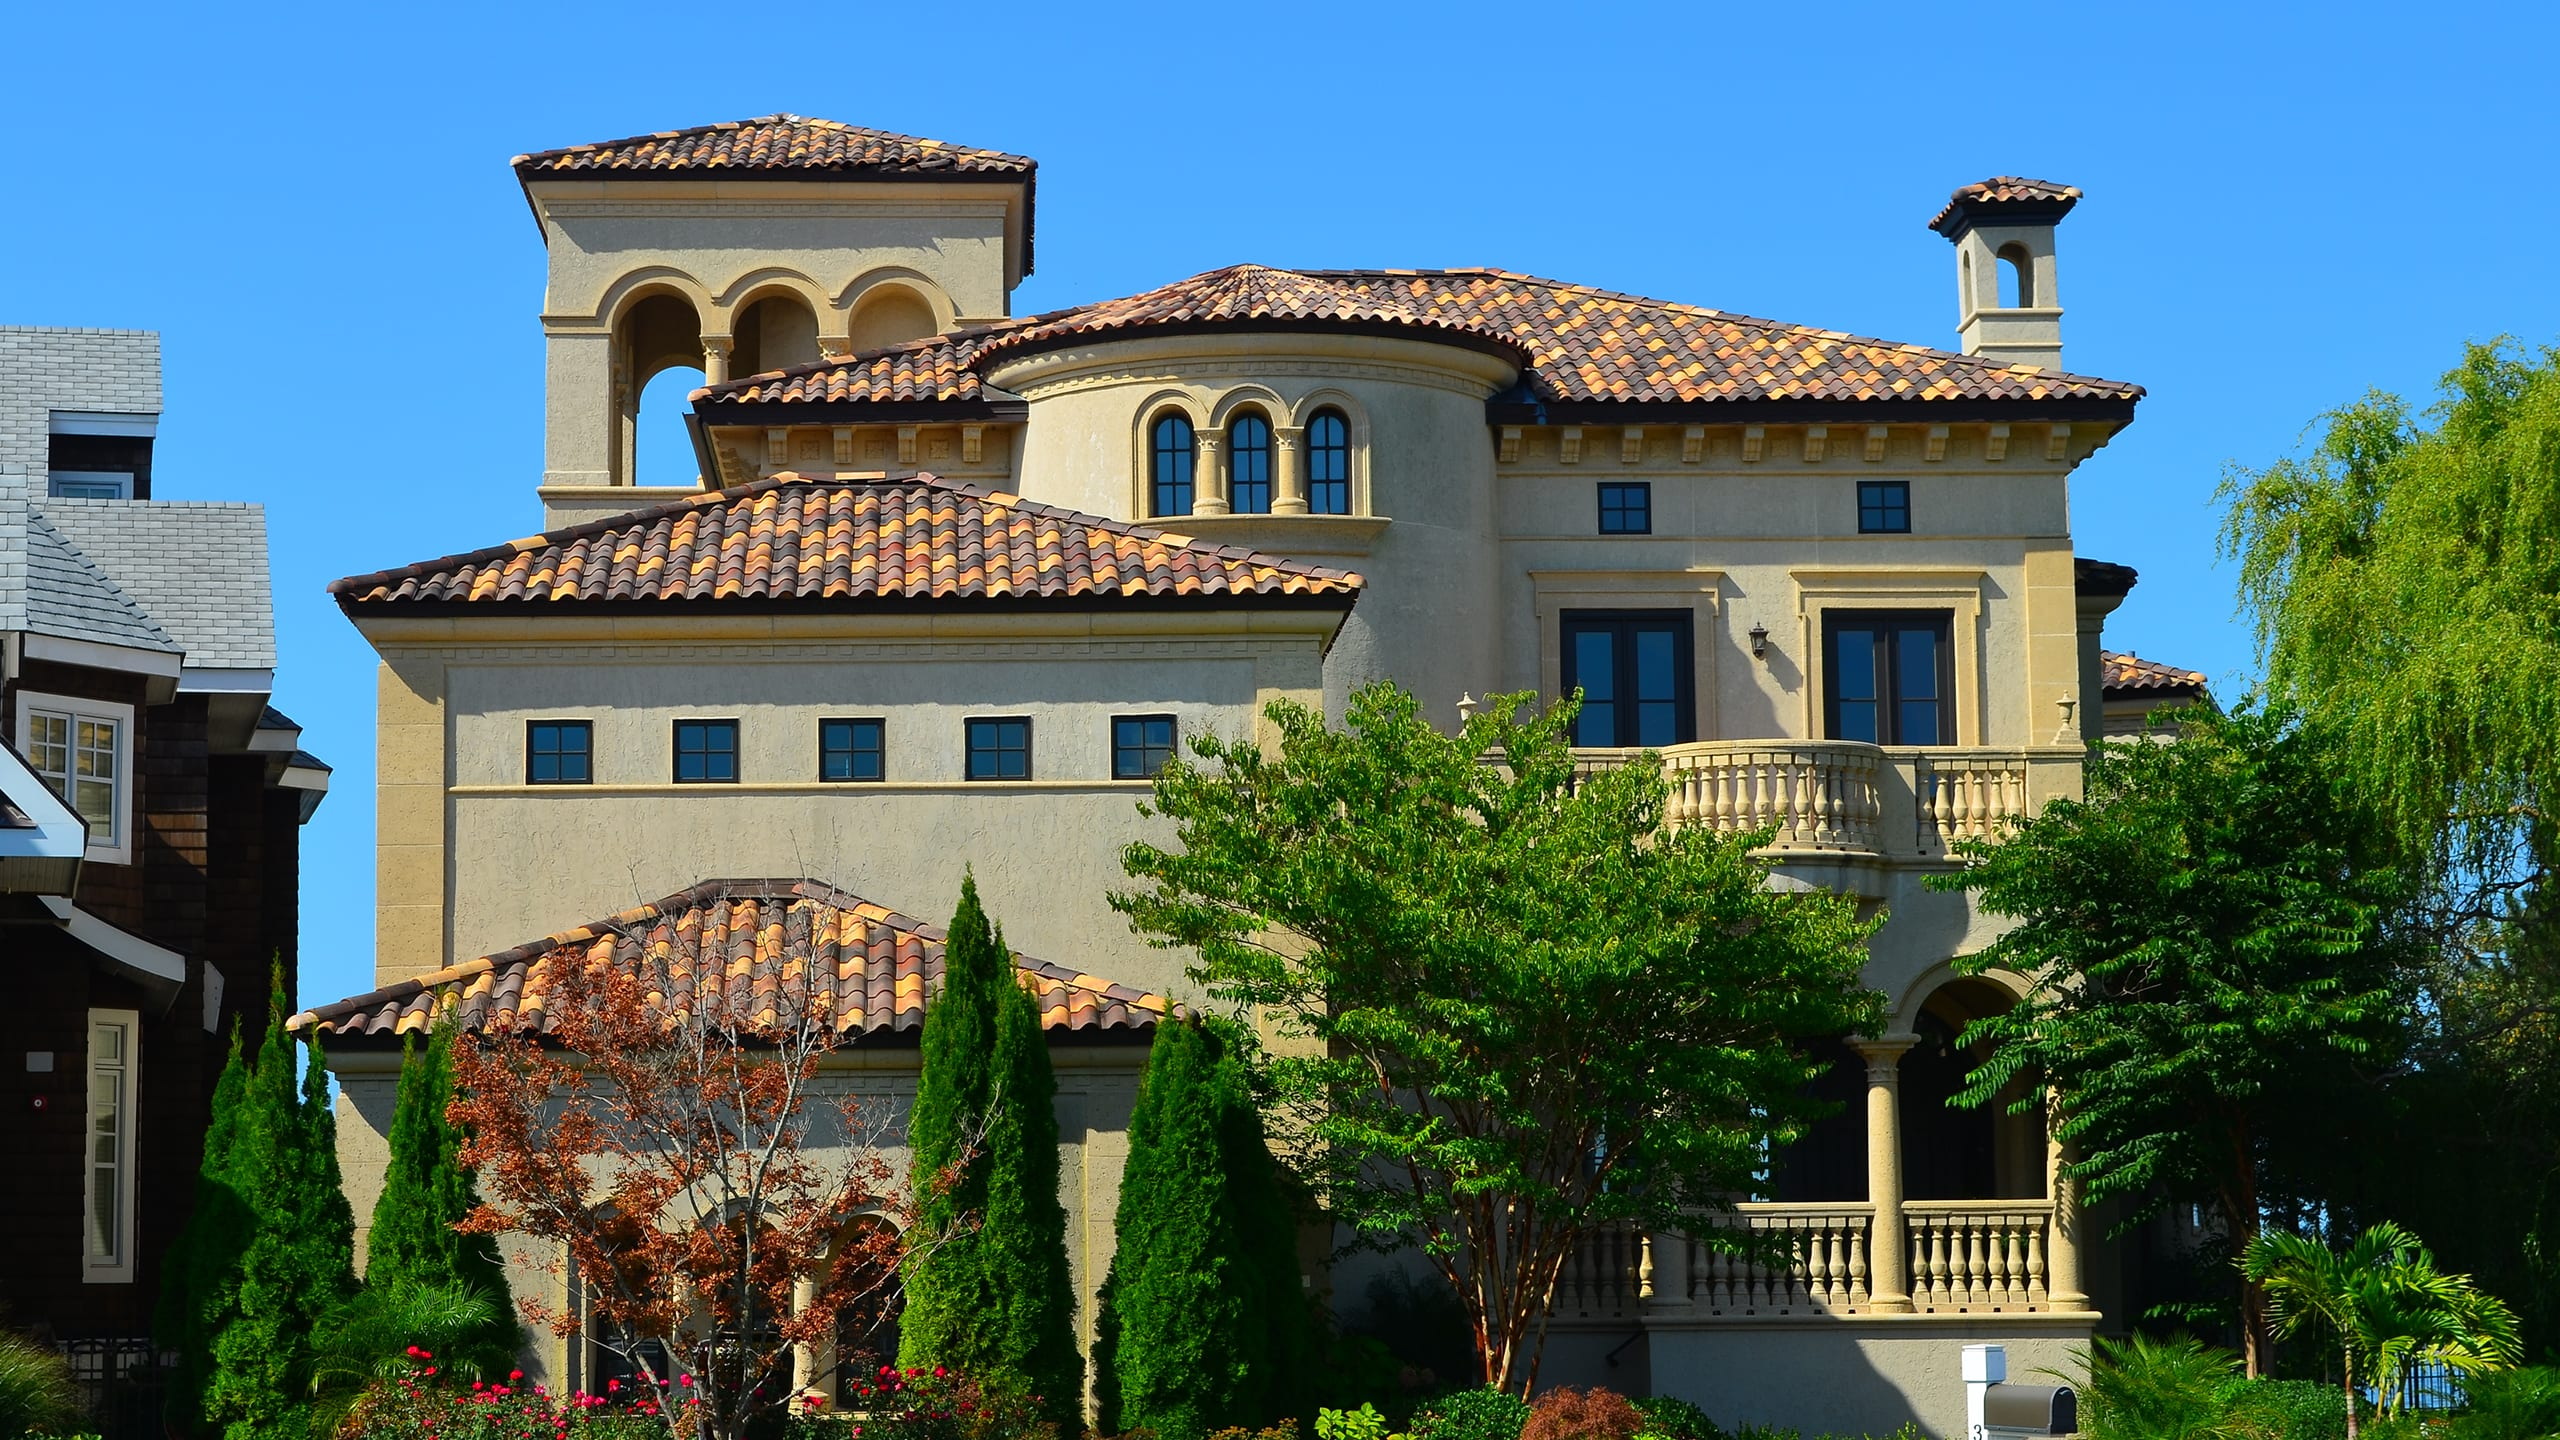 Private Residence - Ocean City Ludowici Roof Tile